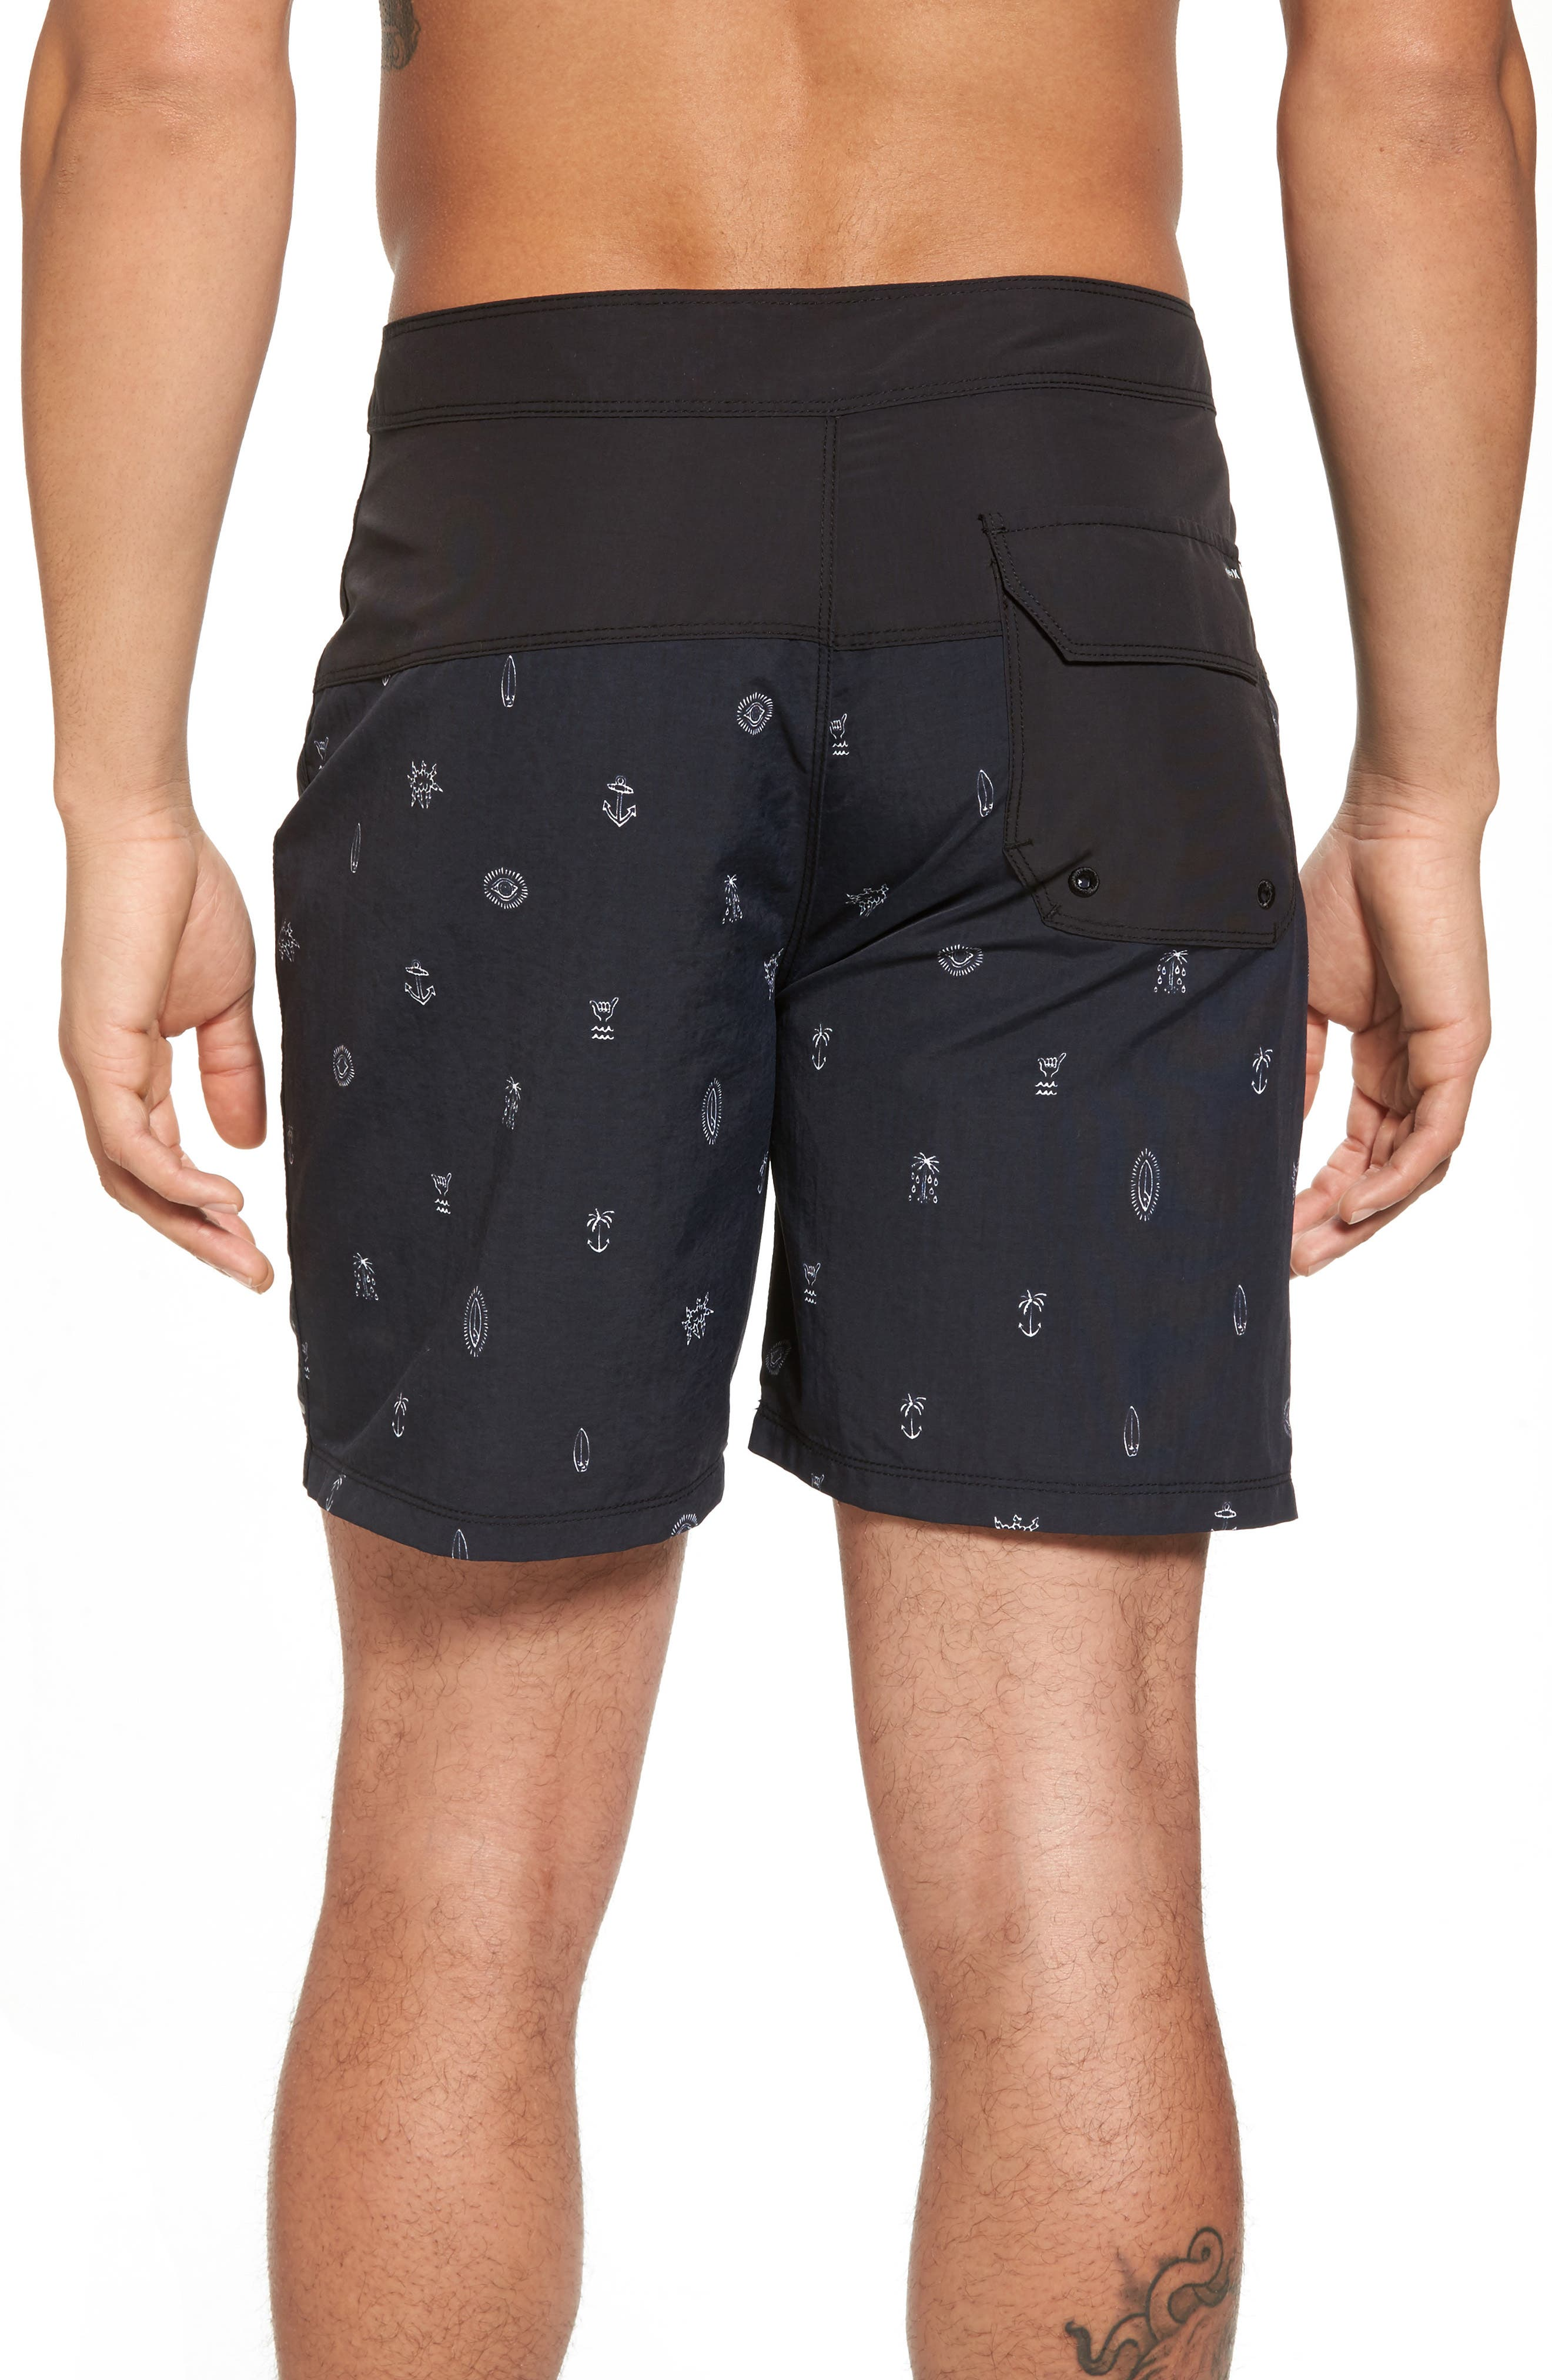 School Yards Board Shorts,                             Alternate thumbnail 2, color,                             010